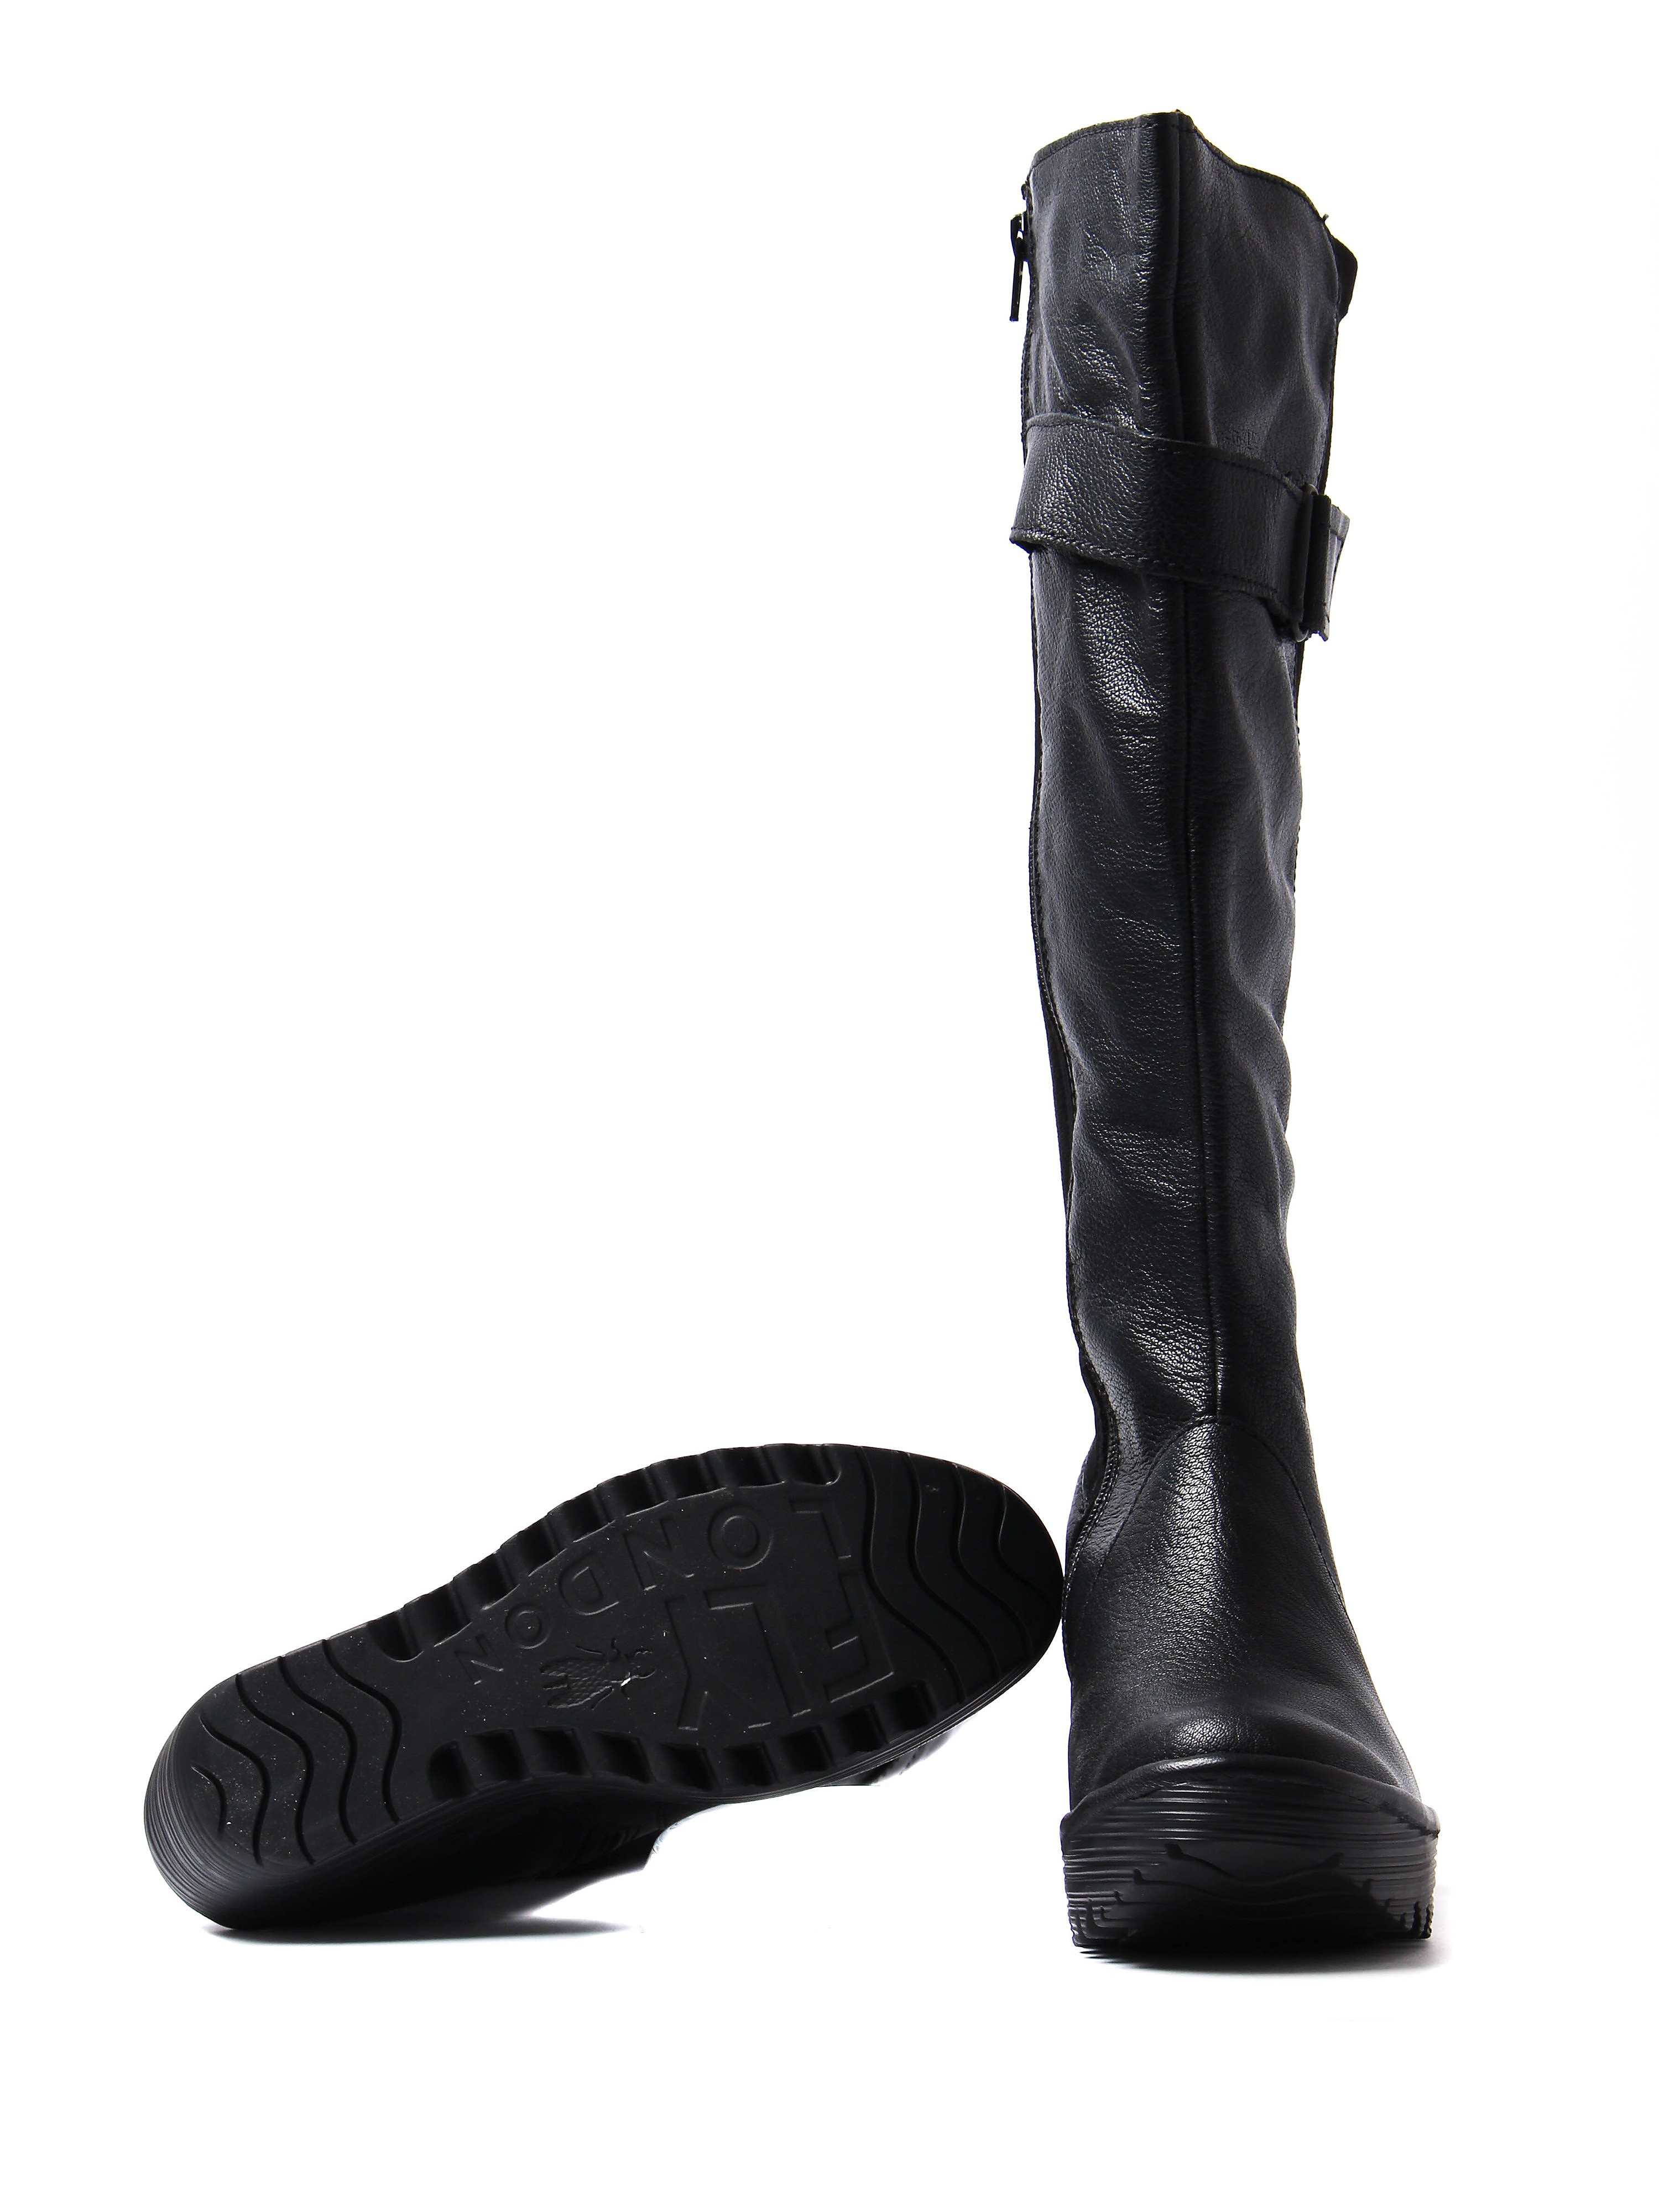 Fly London Women's Yash Tall Boots - Black Leather